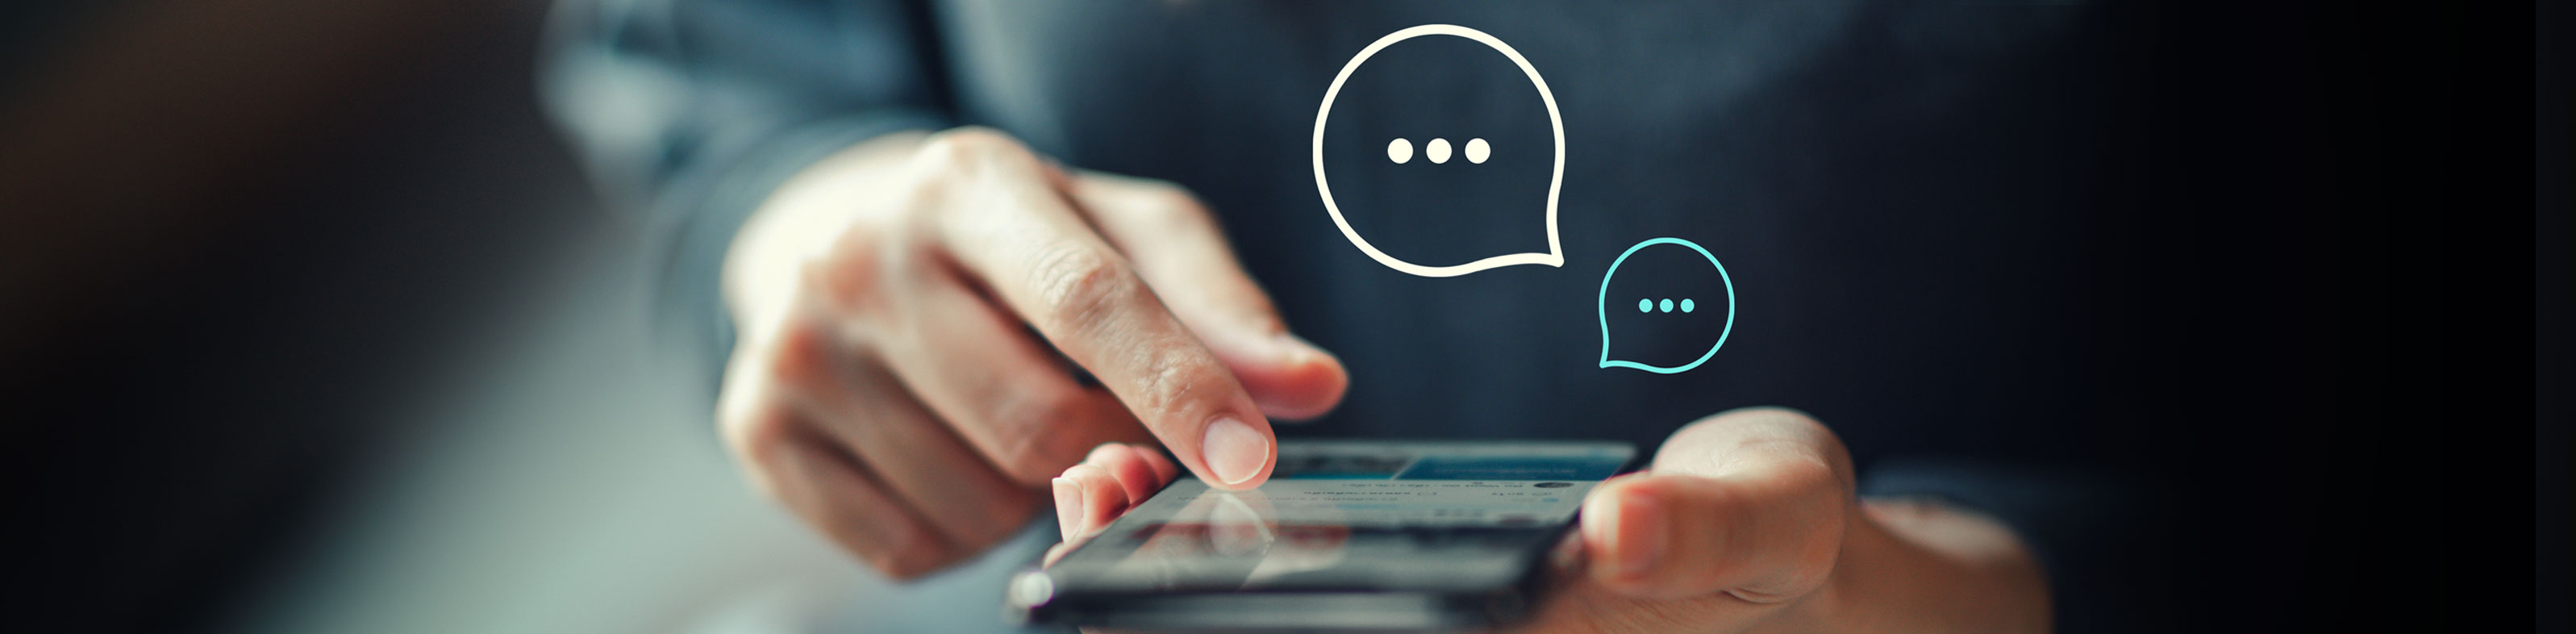 4 Traits that customers expect your live chat support to have